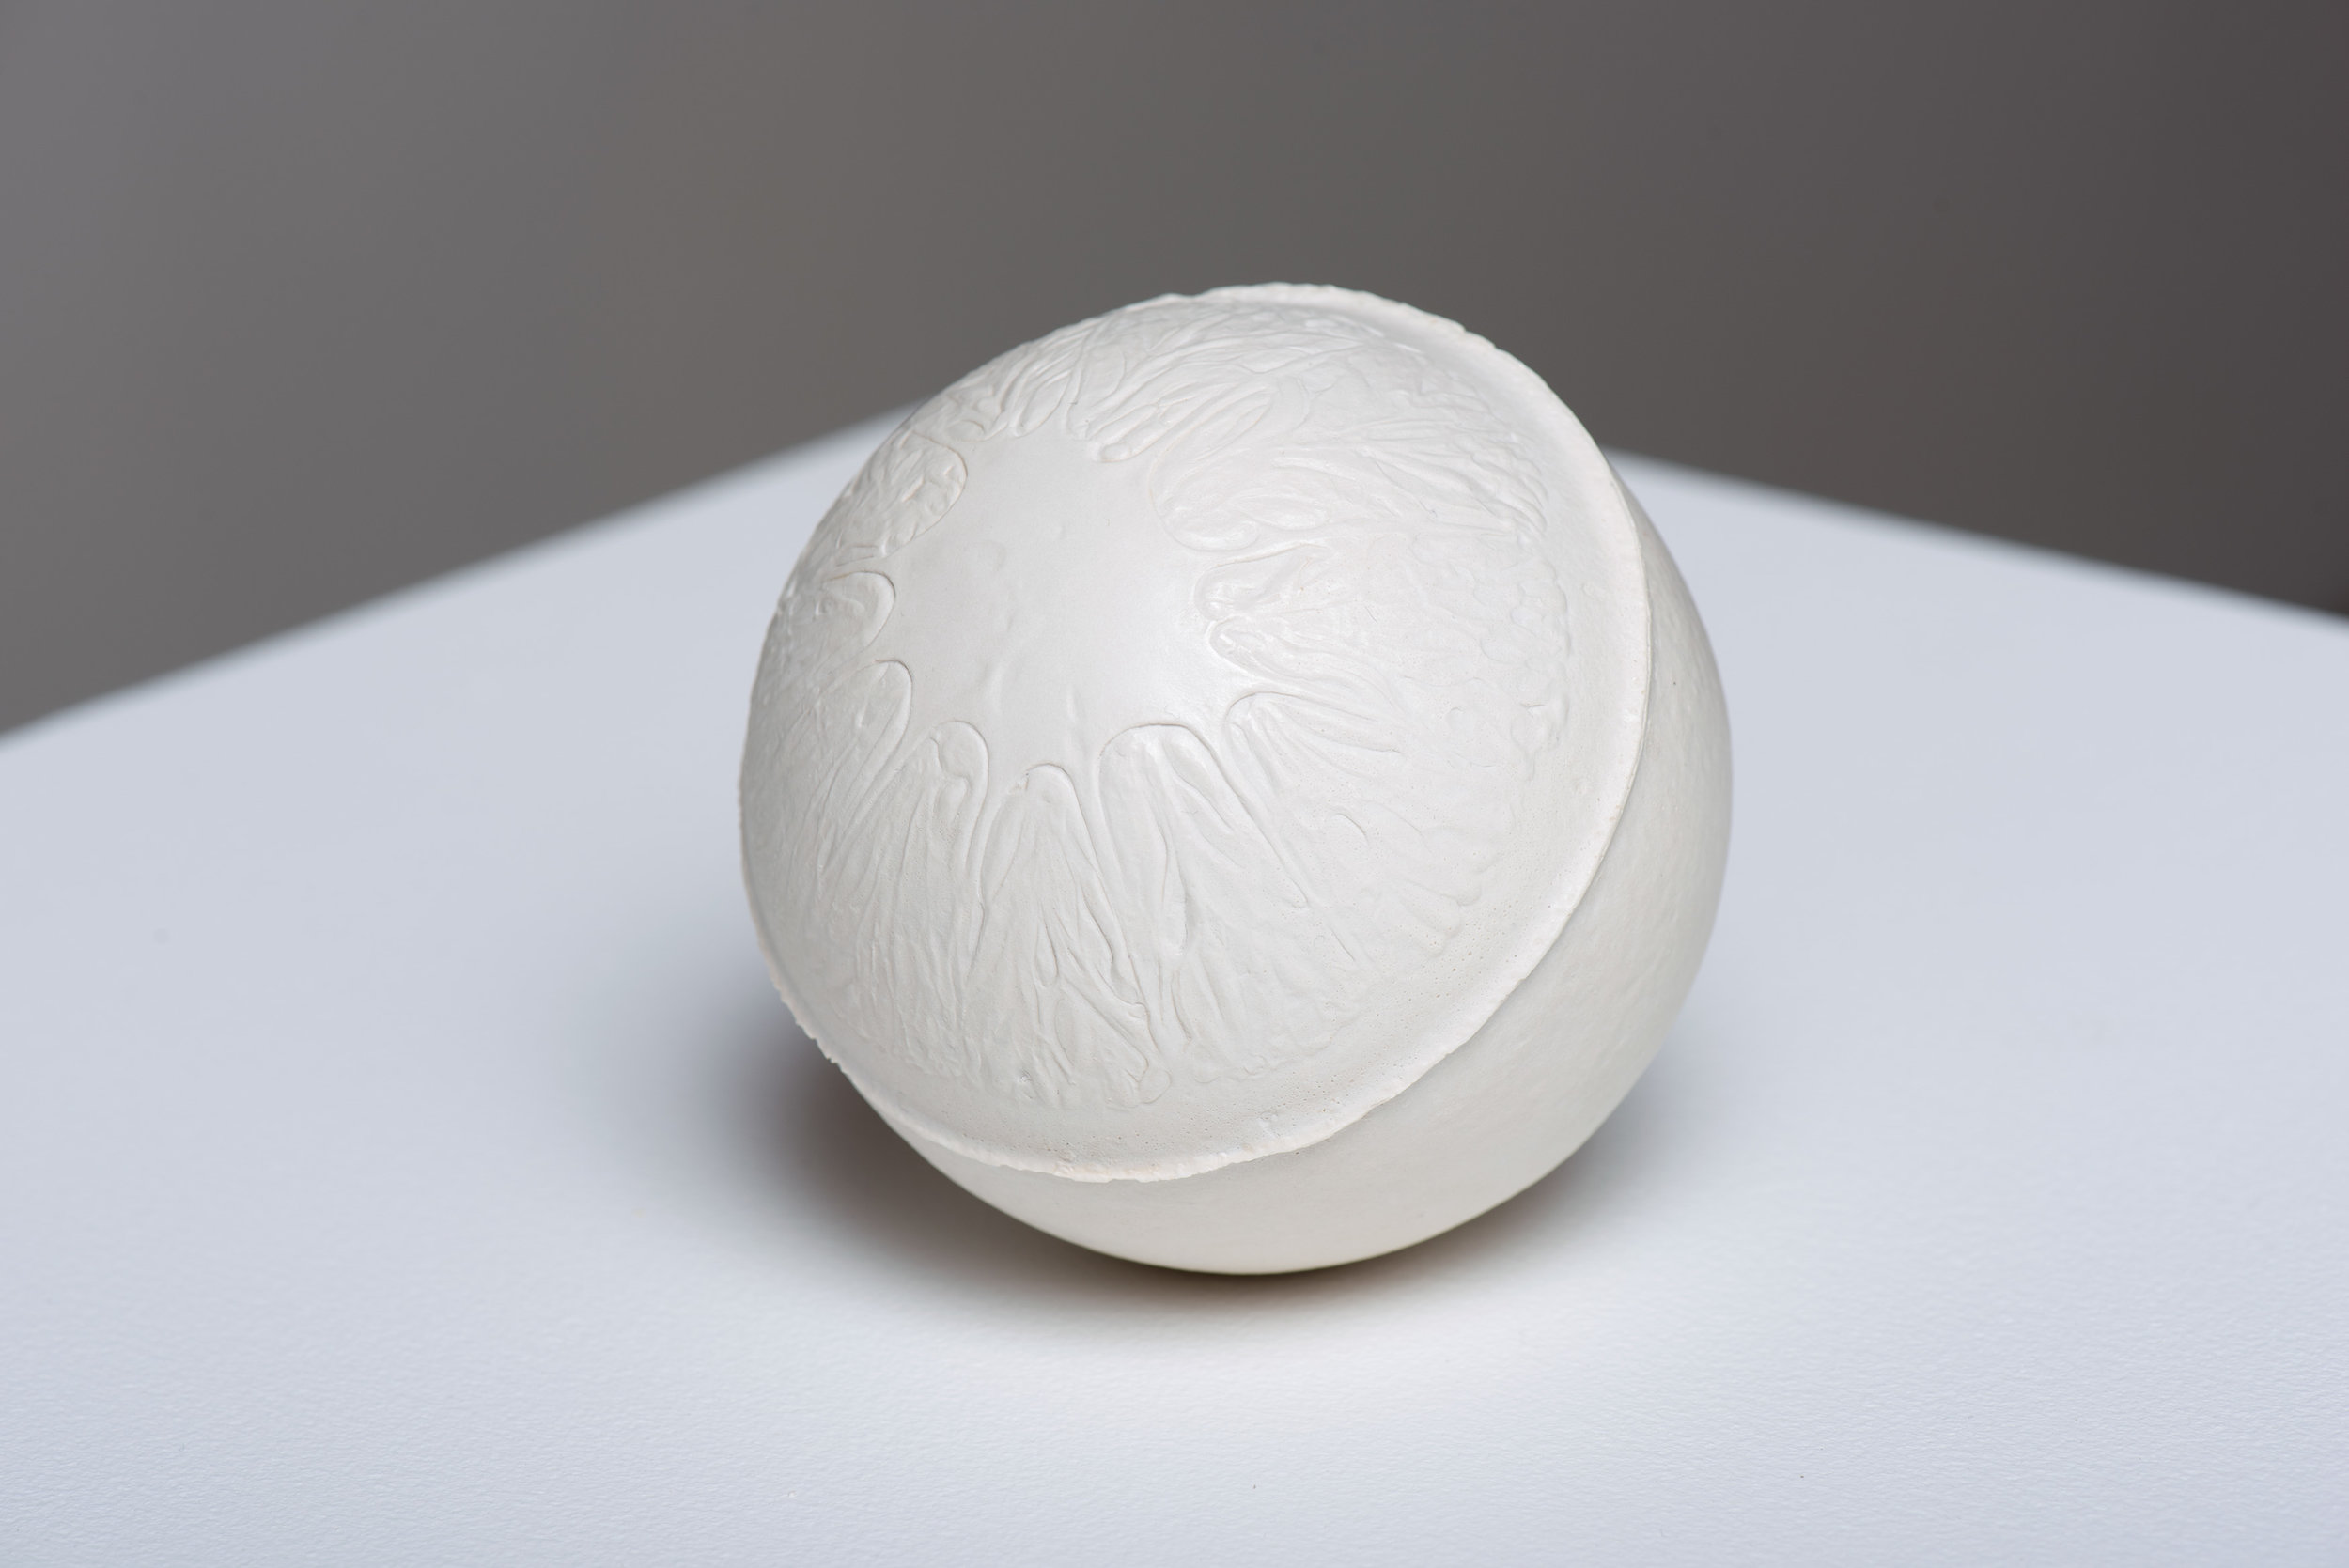 Navel , 2017 Gypsum cement, and porcelain dust 3 1/2 inches (round)